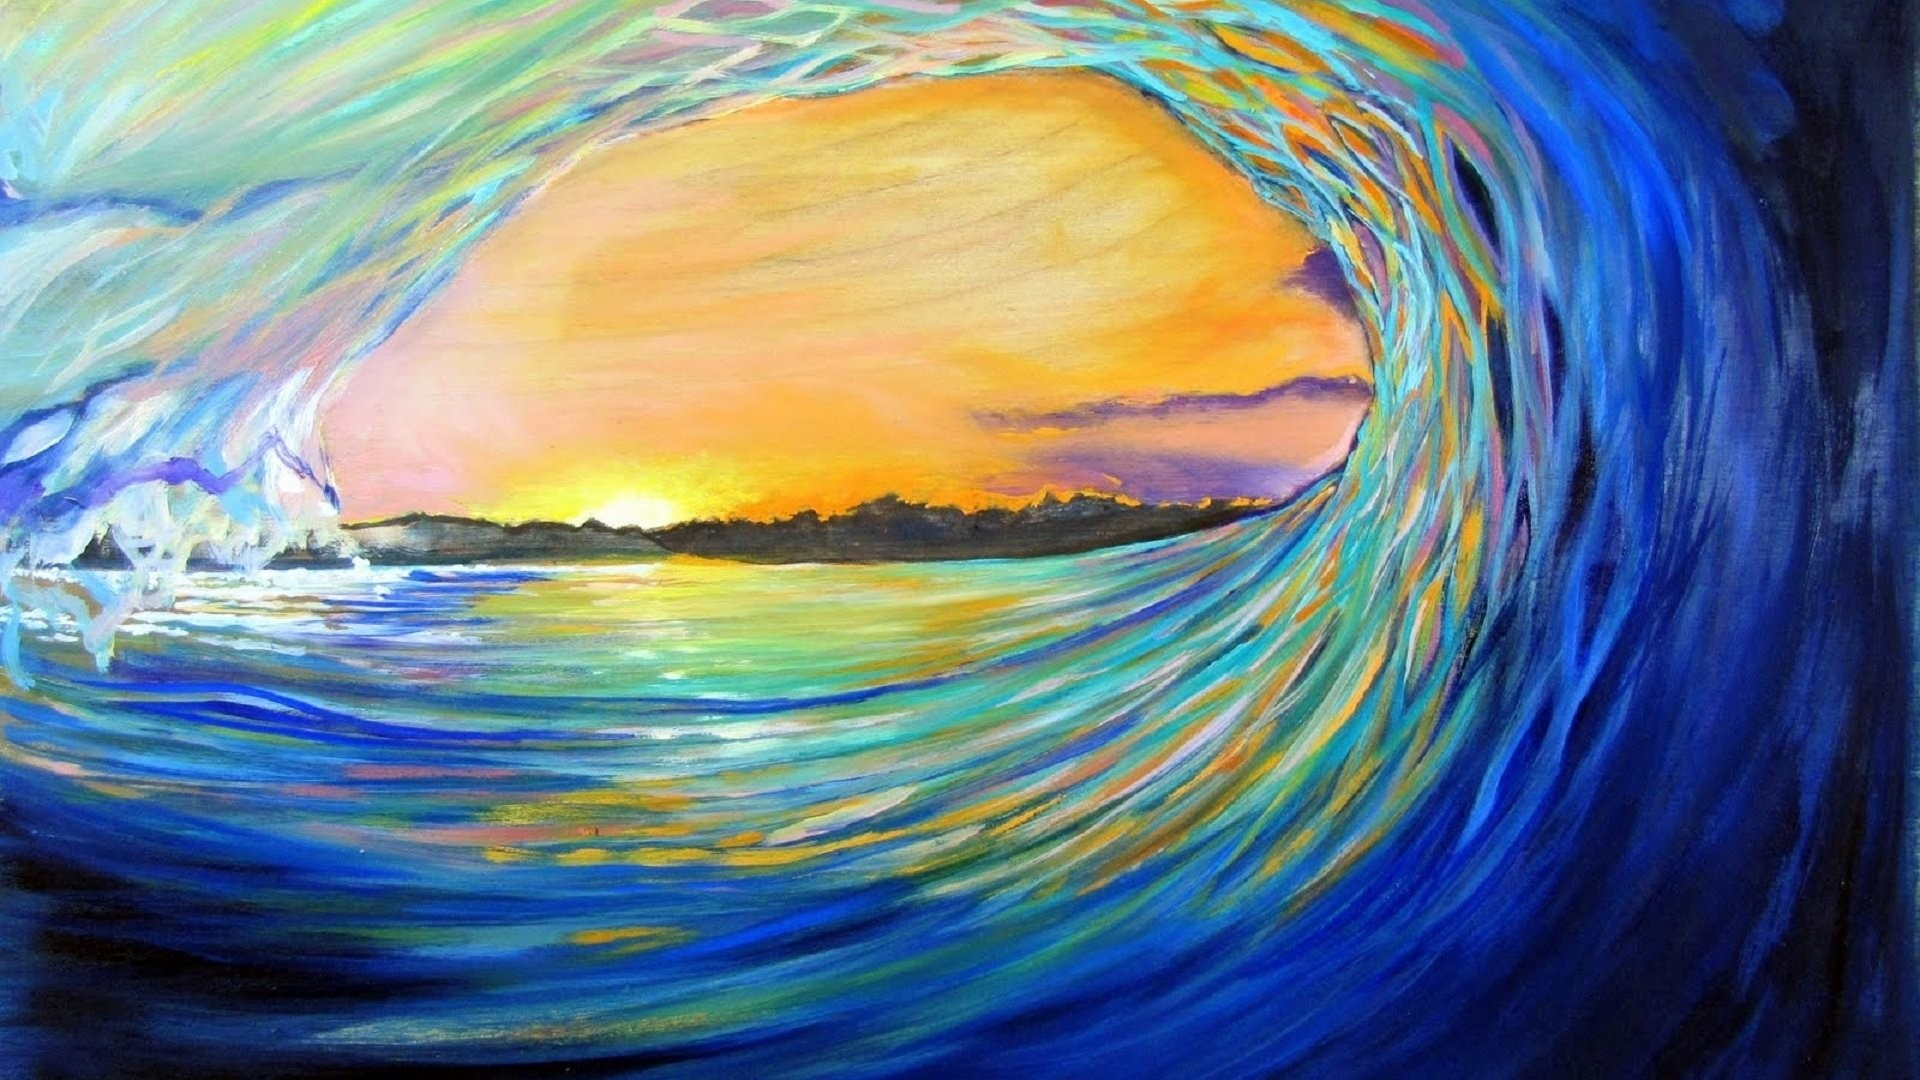 1920x1080 Artistic - Wave Artistic Ocean Sea Painting Sun Sunset Wallpaper